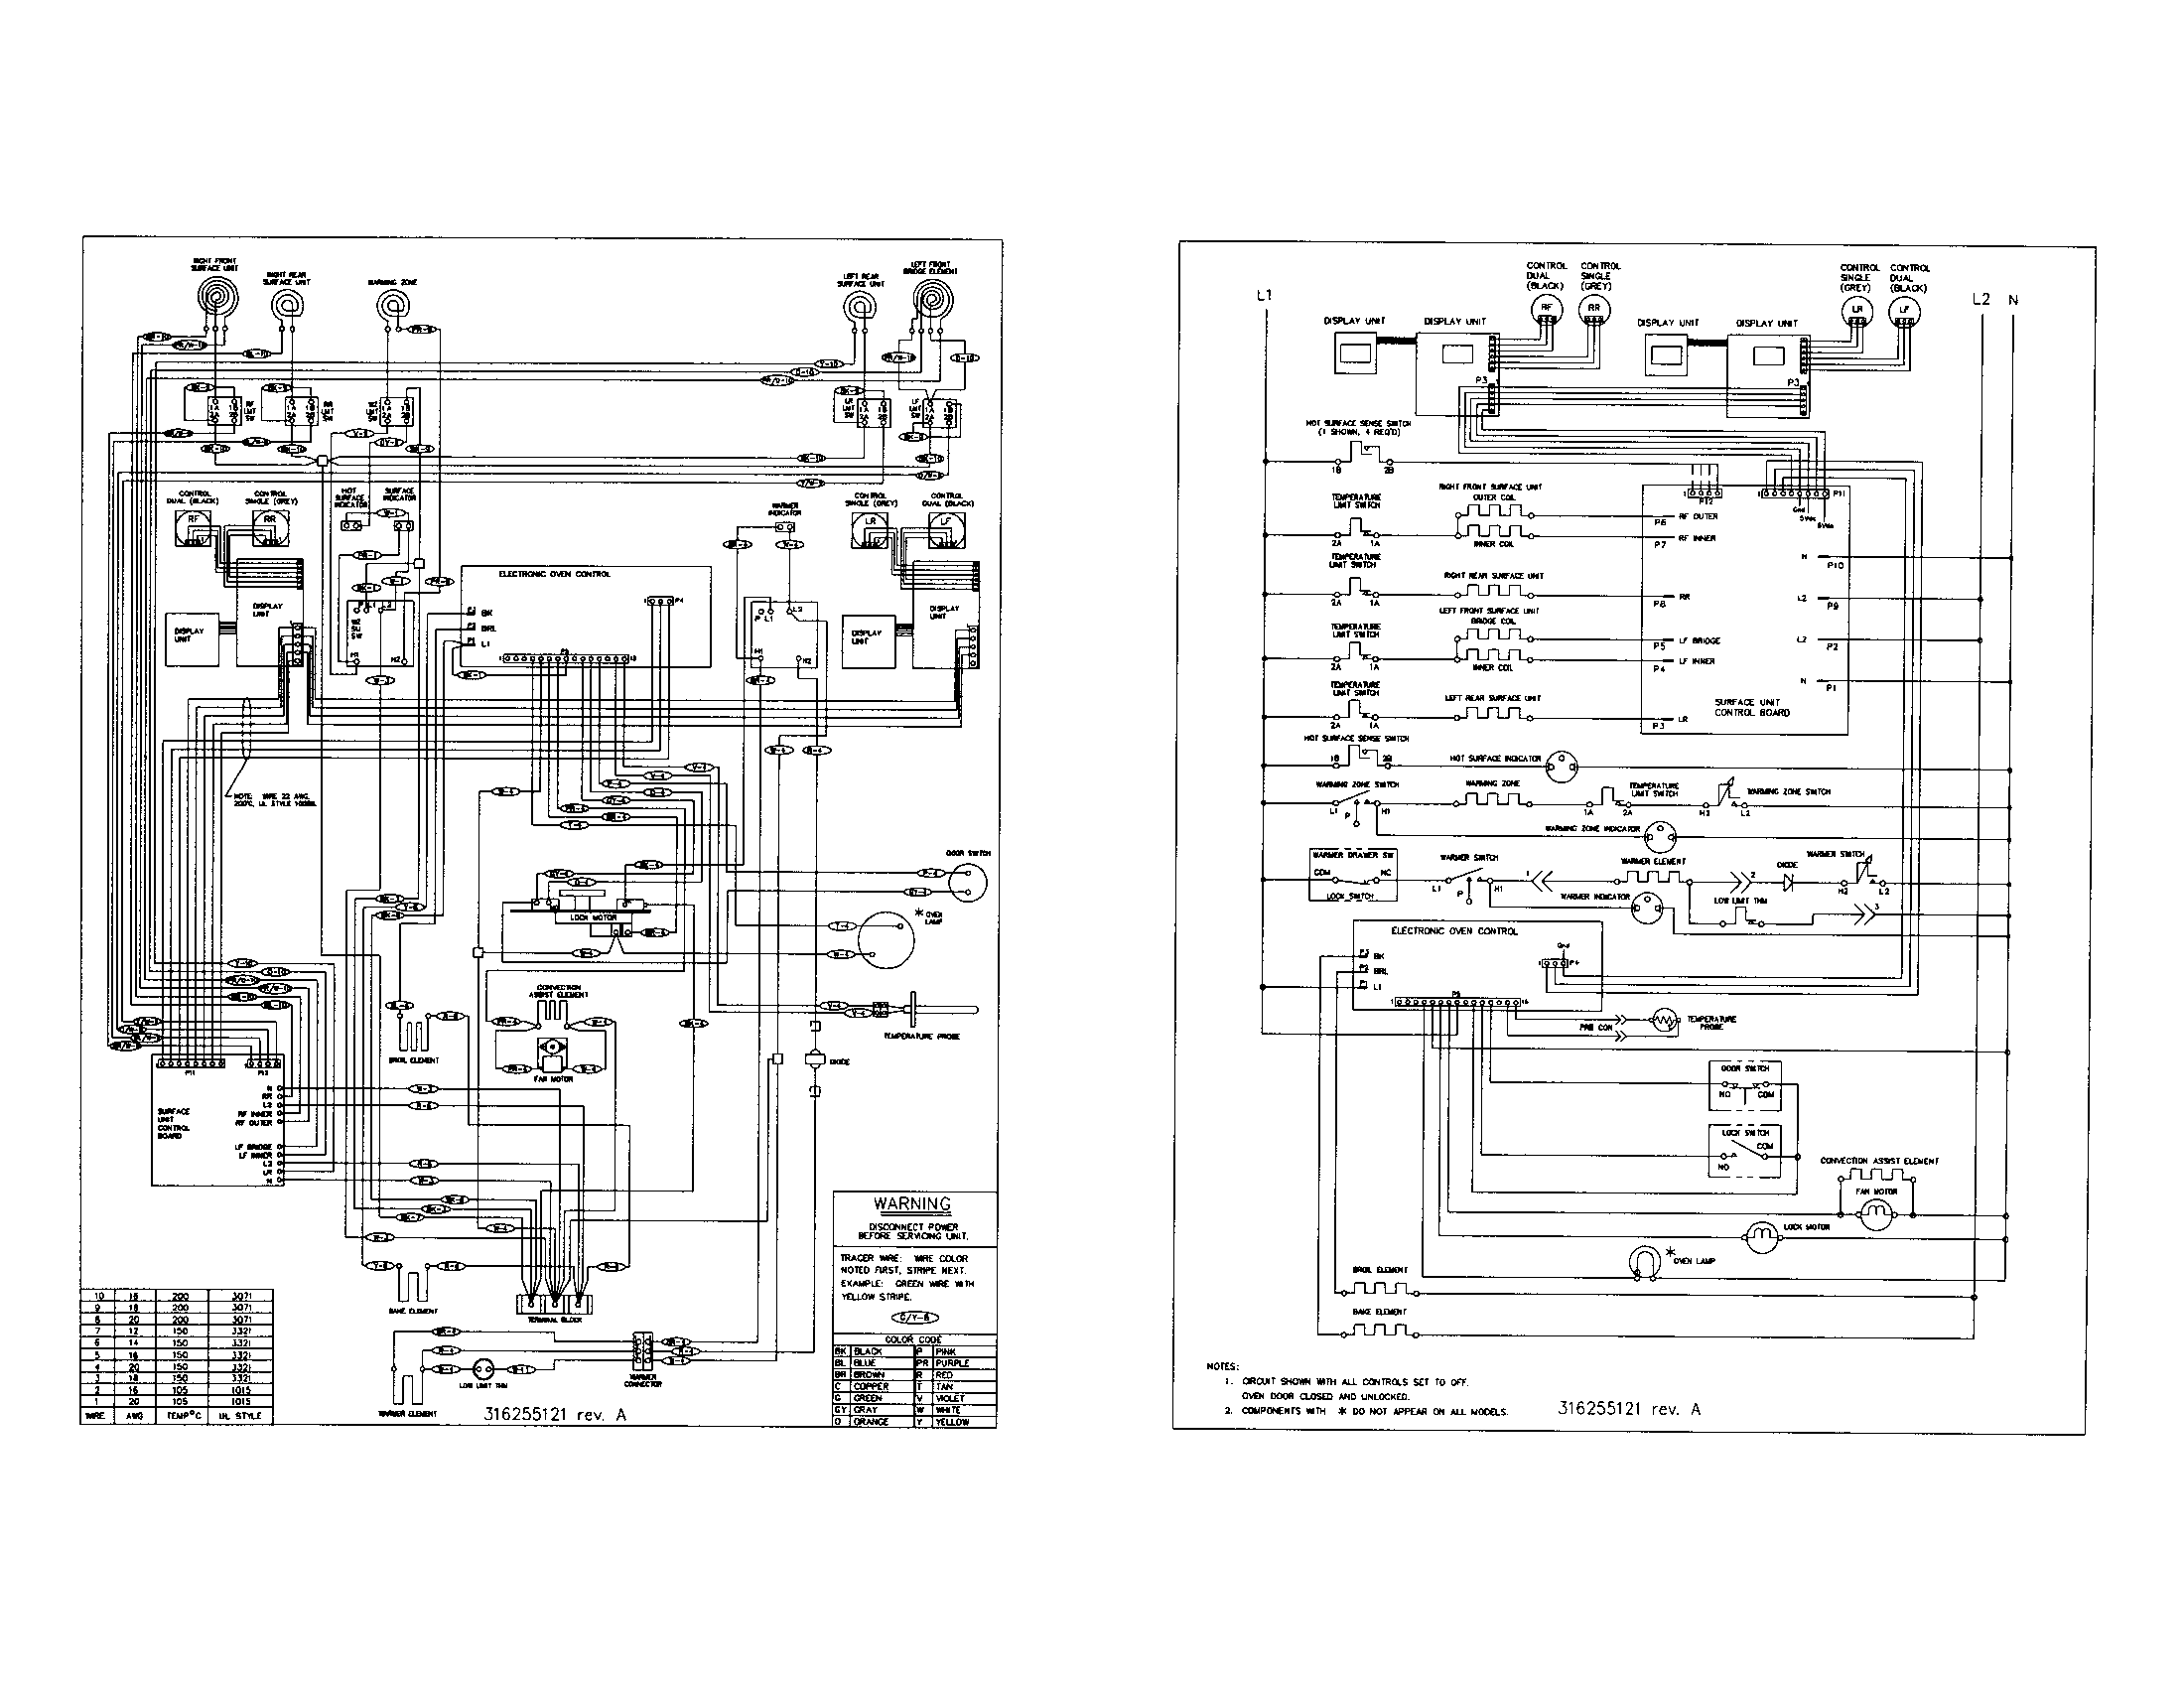 Lr27935 Wiring Diagram 22 Images Diagrams Th6220d Partsresize